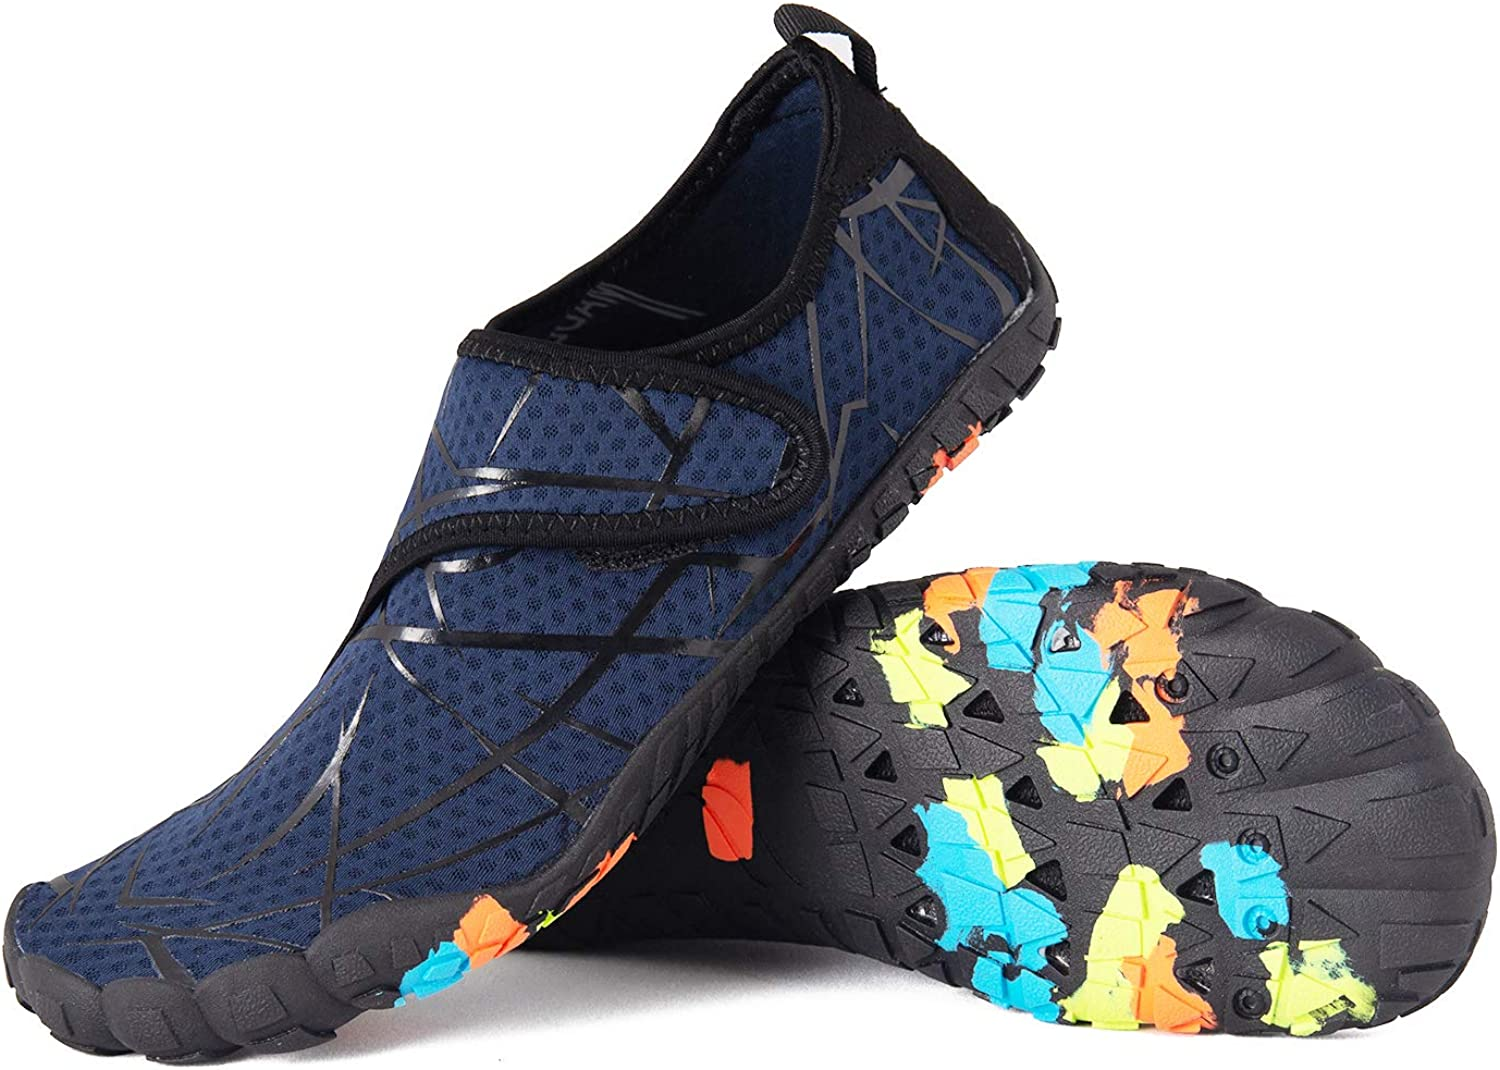 LZ Mens Womens Water shoes Beach shoes Quick Dry Swim shoes Lightweight Barefoot Aqua shoes